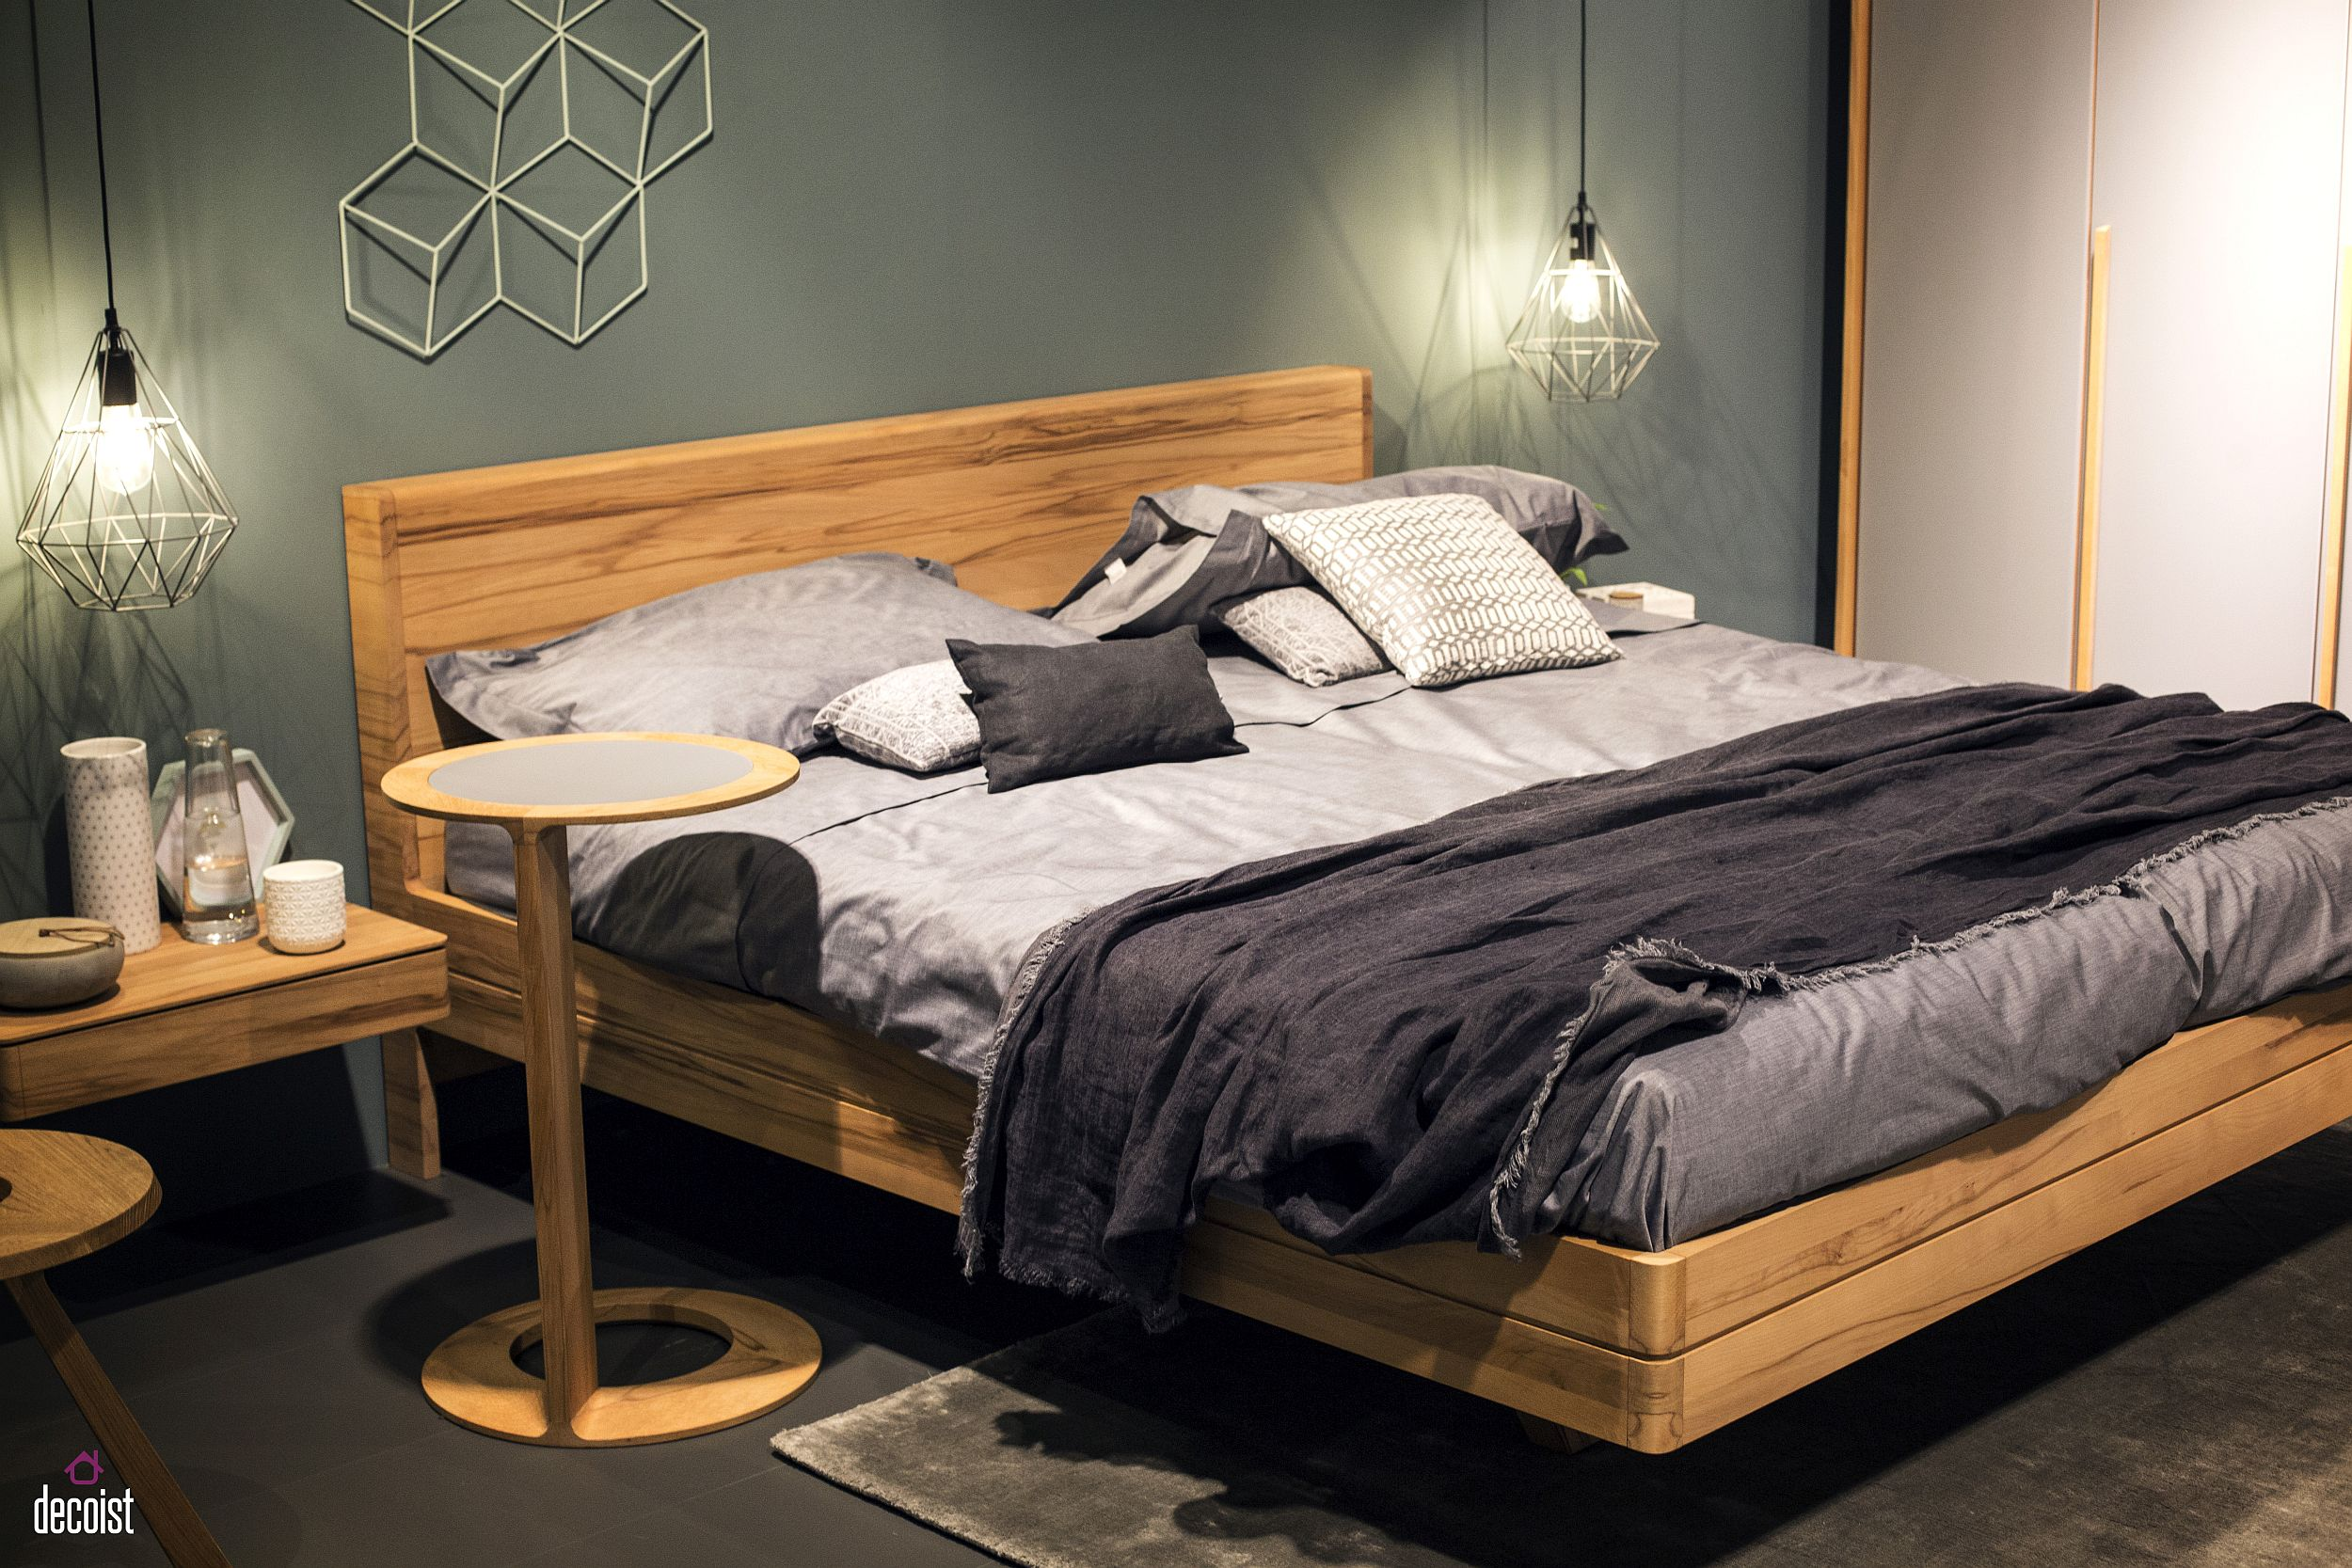 Dashing-contemporary-bedroom-with-geo-style-bedside-pendants